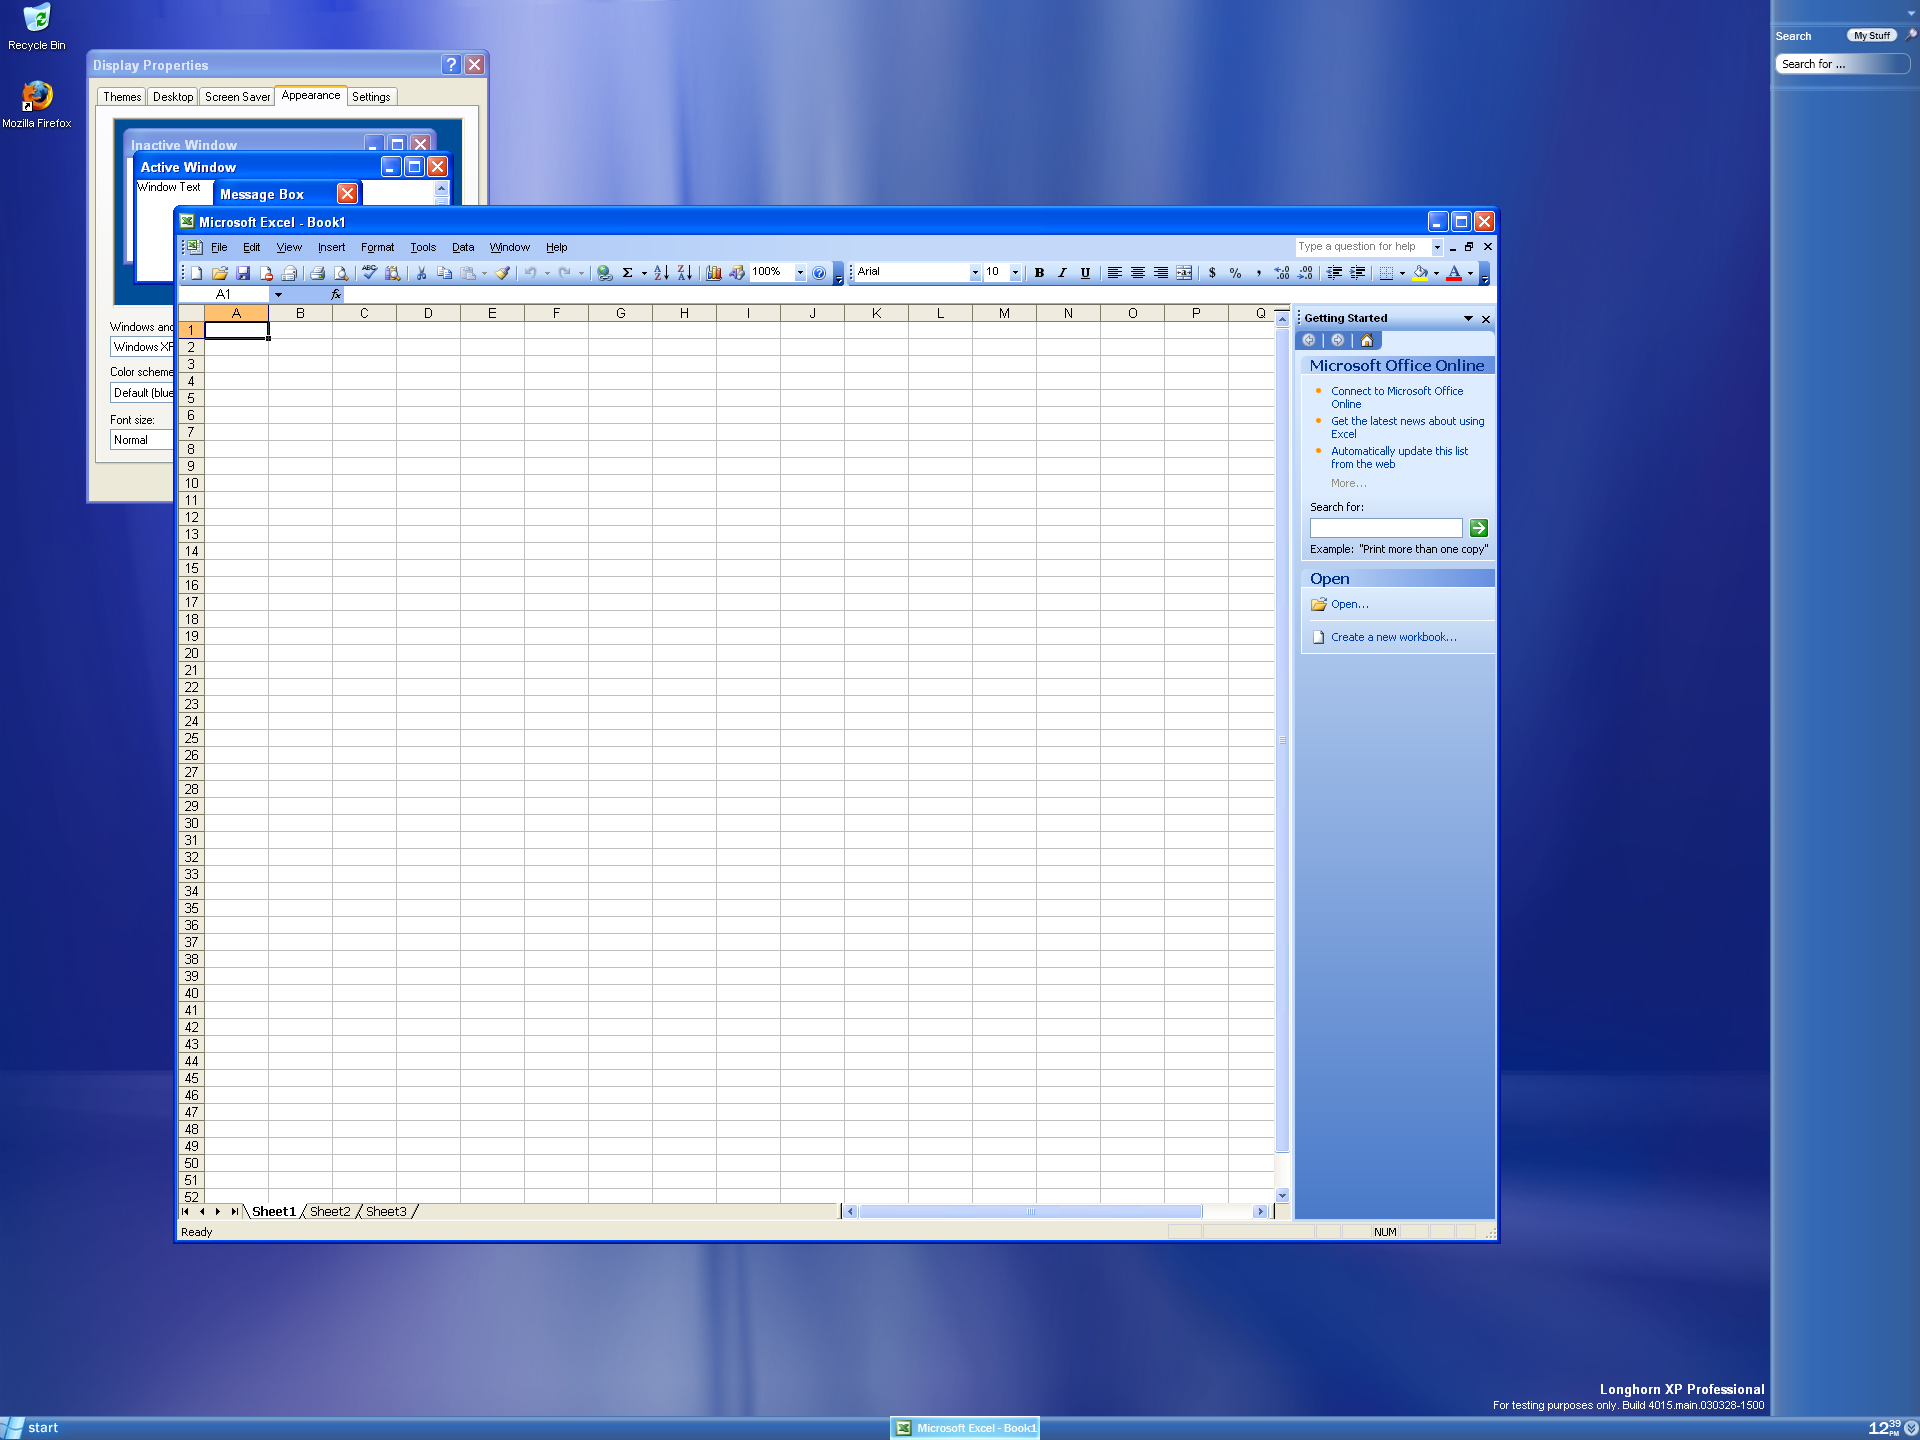 View topic - Hidden Longhorn Plex theme in MS Office 2003